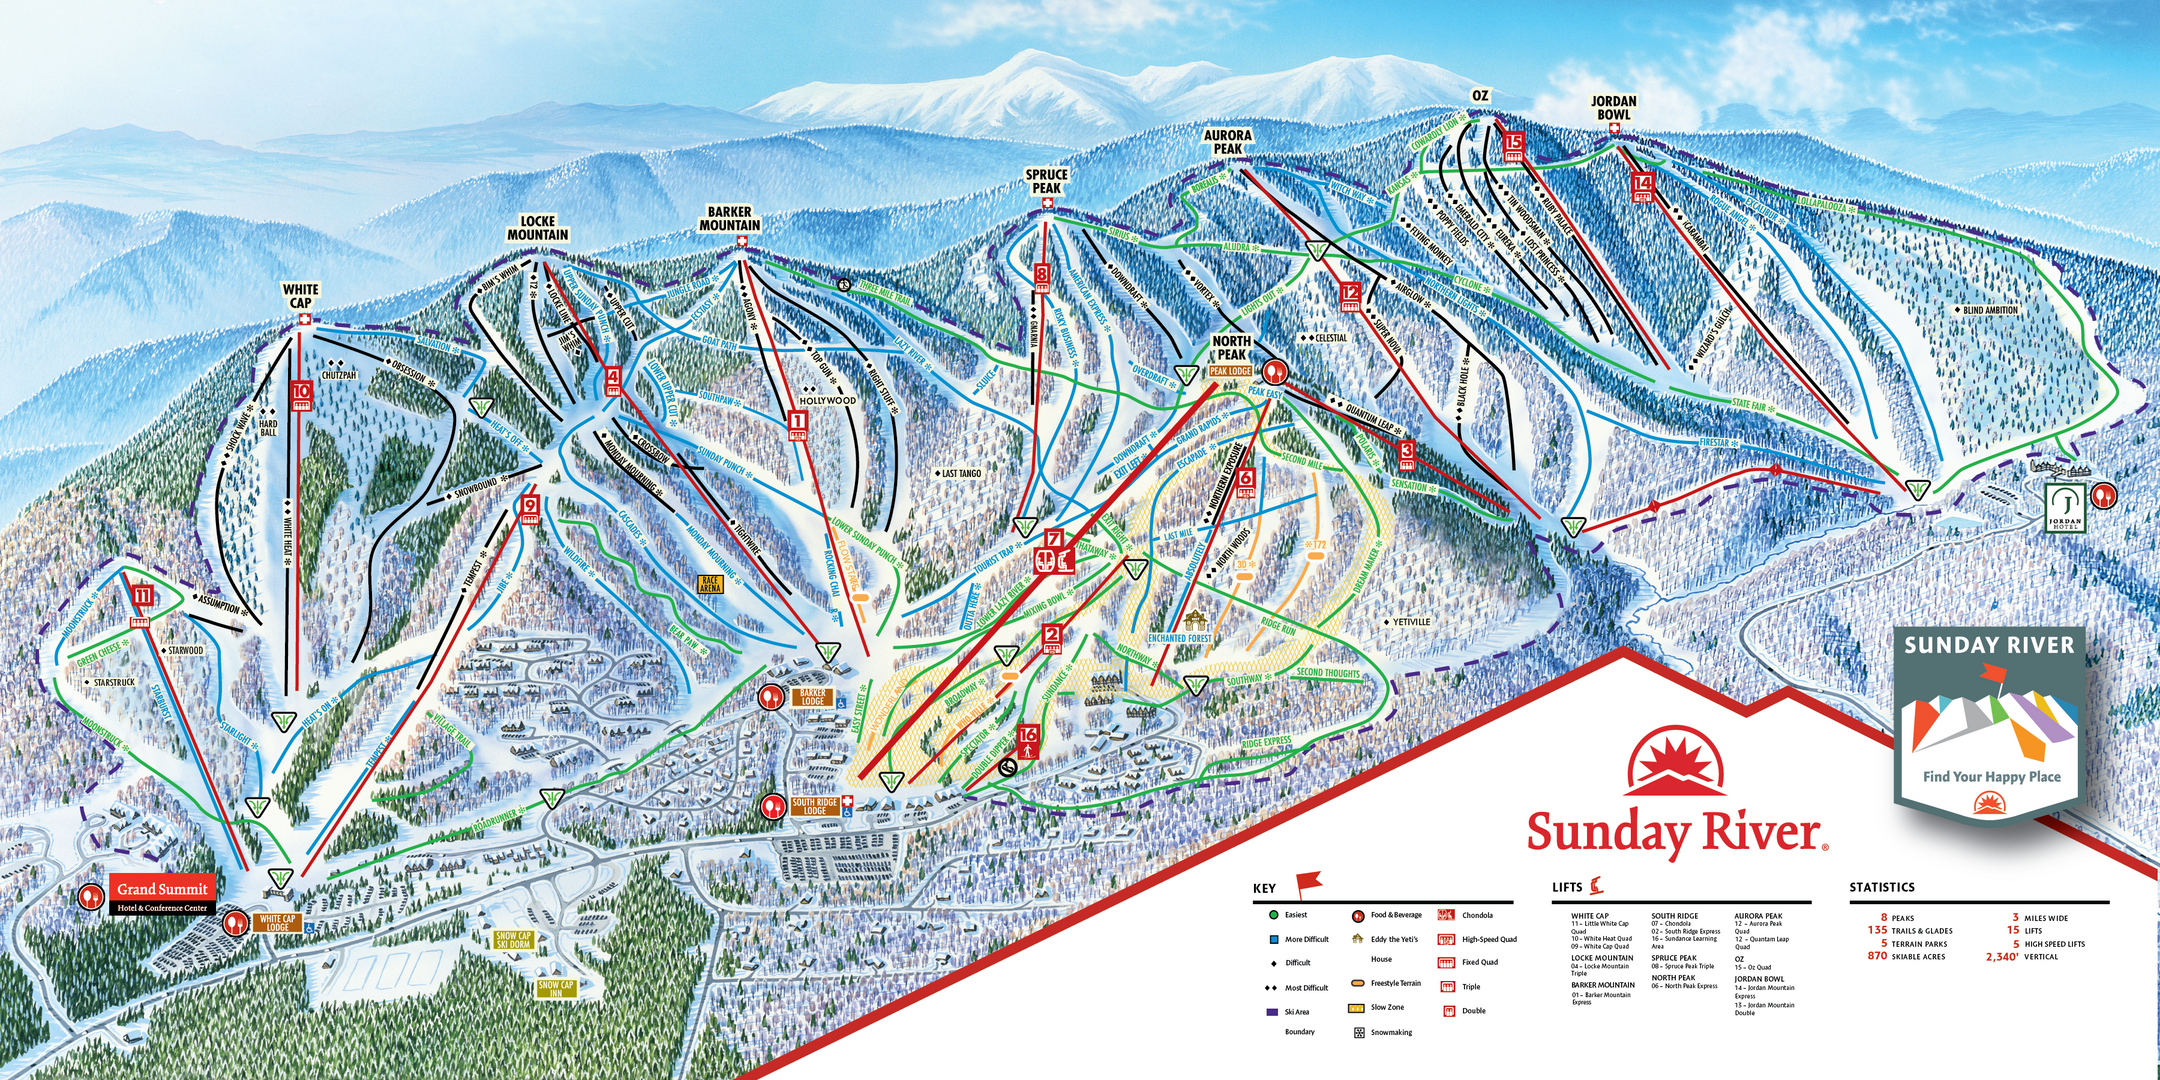 Sunday River ski-resort-trail-map United States ripatrip